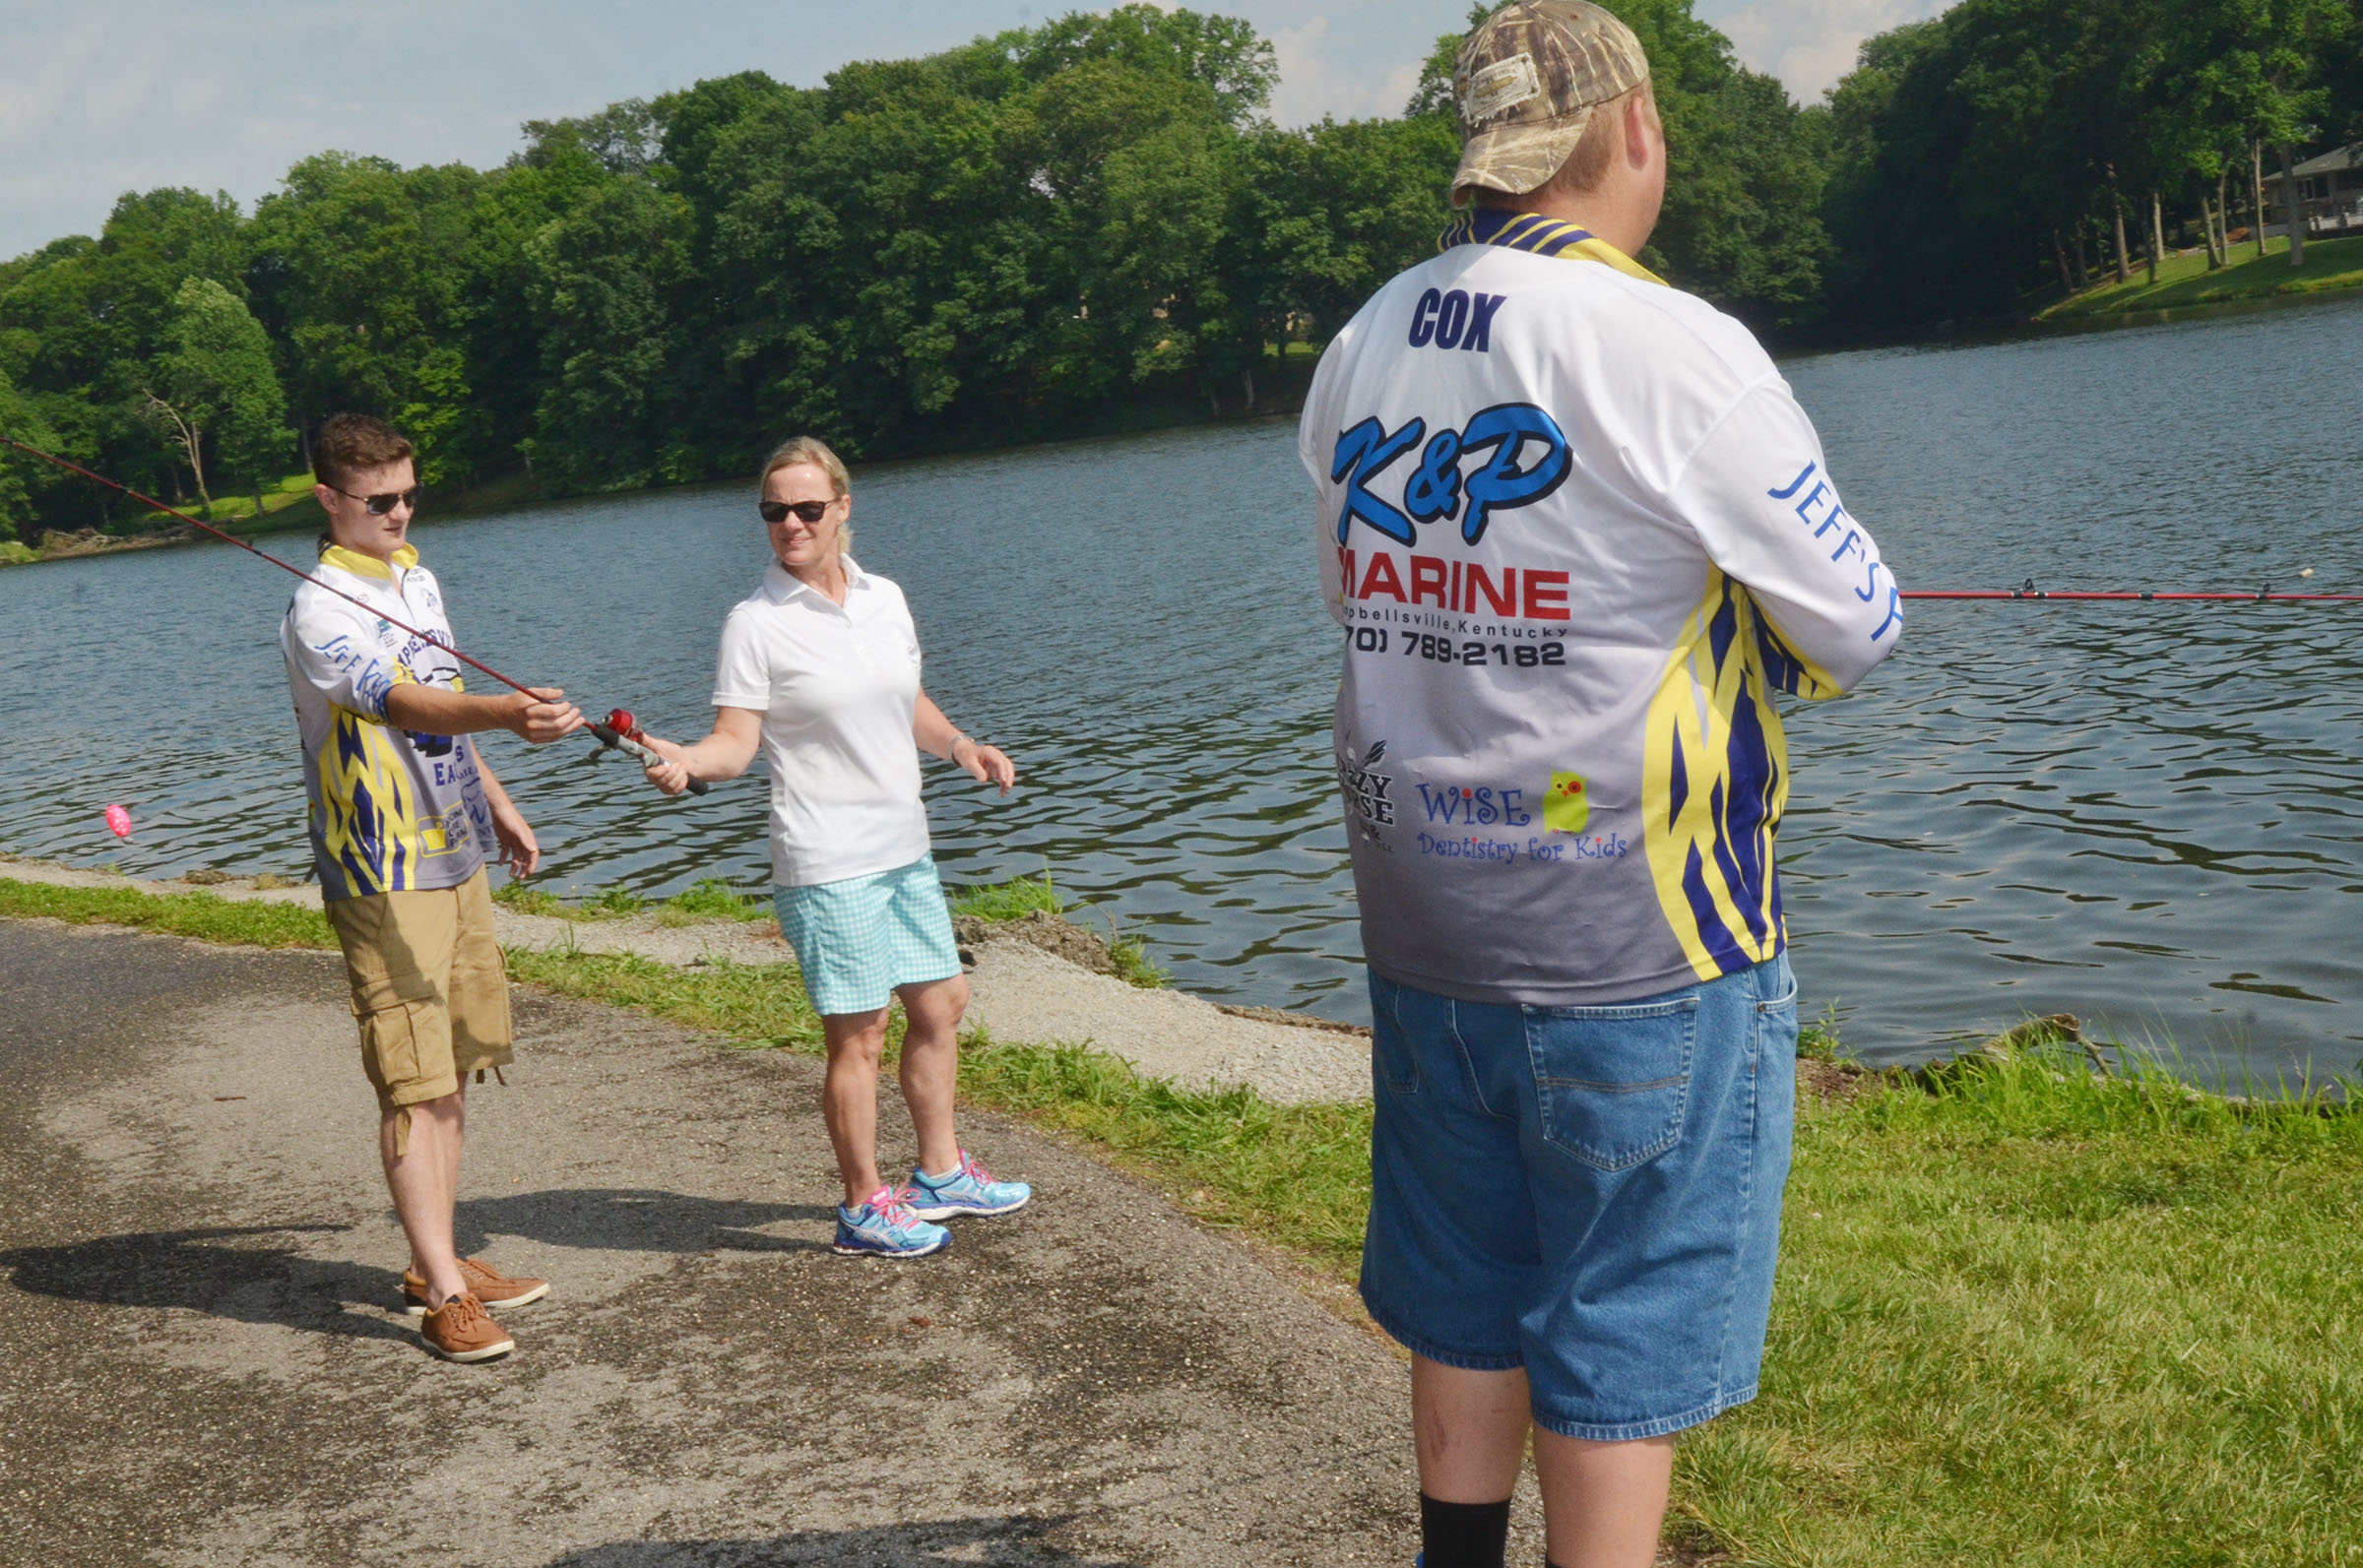 CHS fishing team member Bryce Richardson, at left, helps Mary Ann Rice learn to cast.